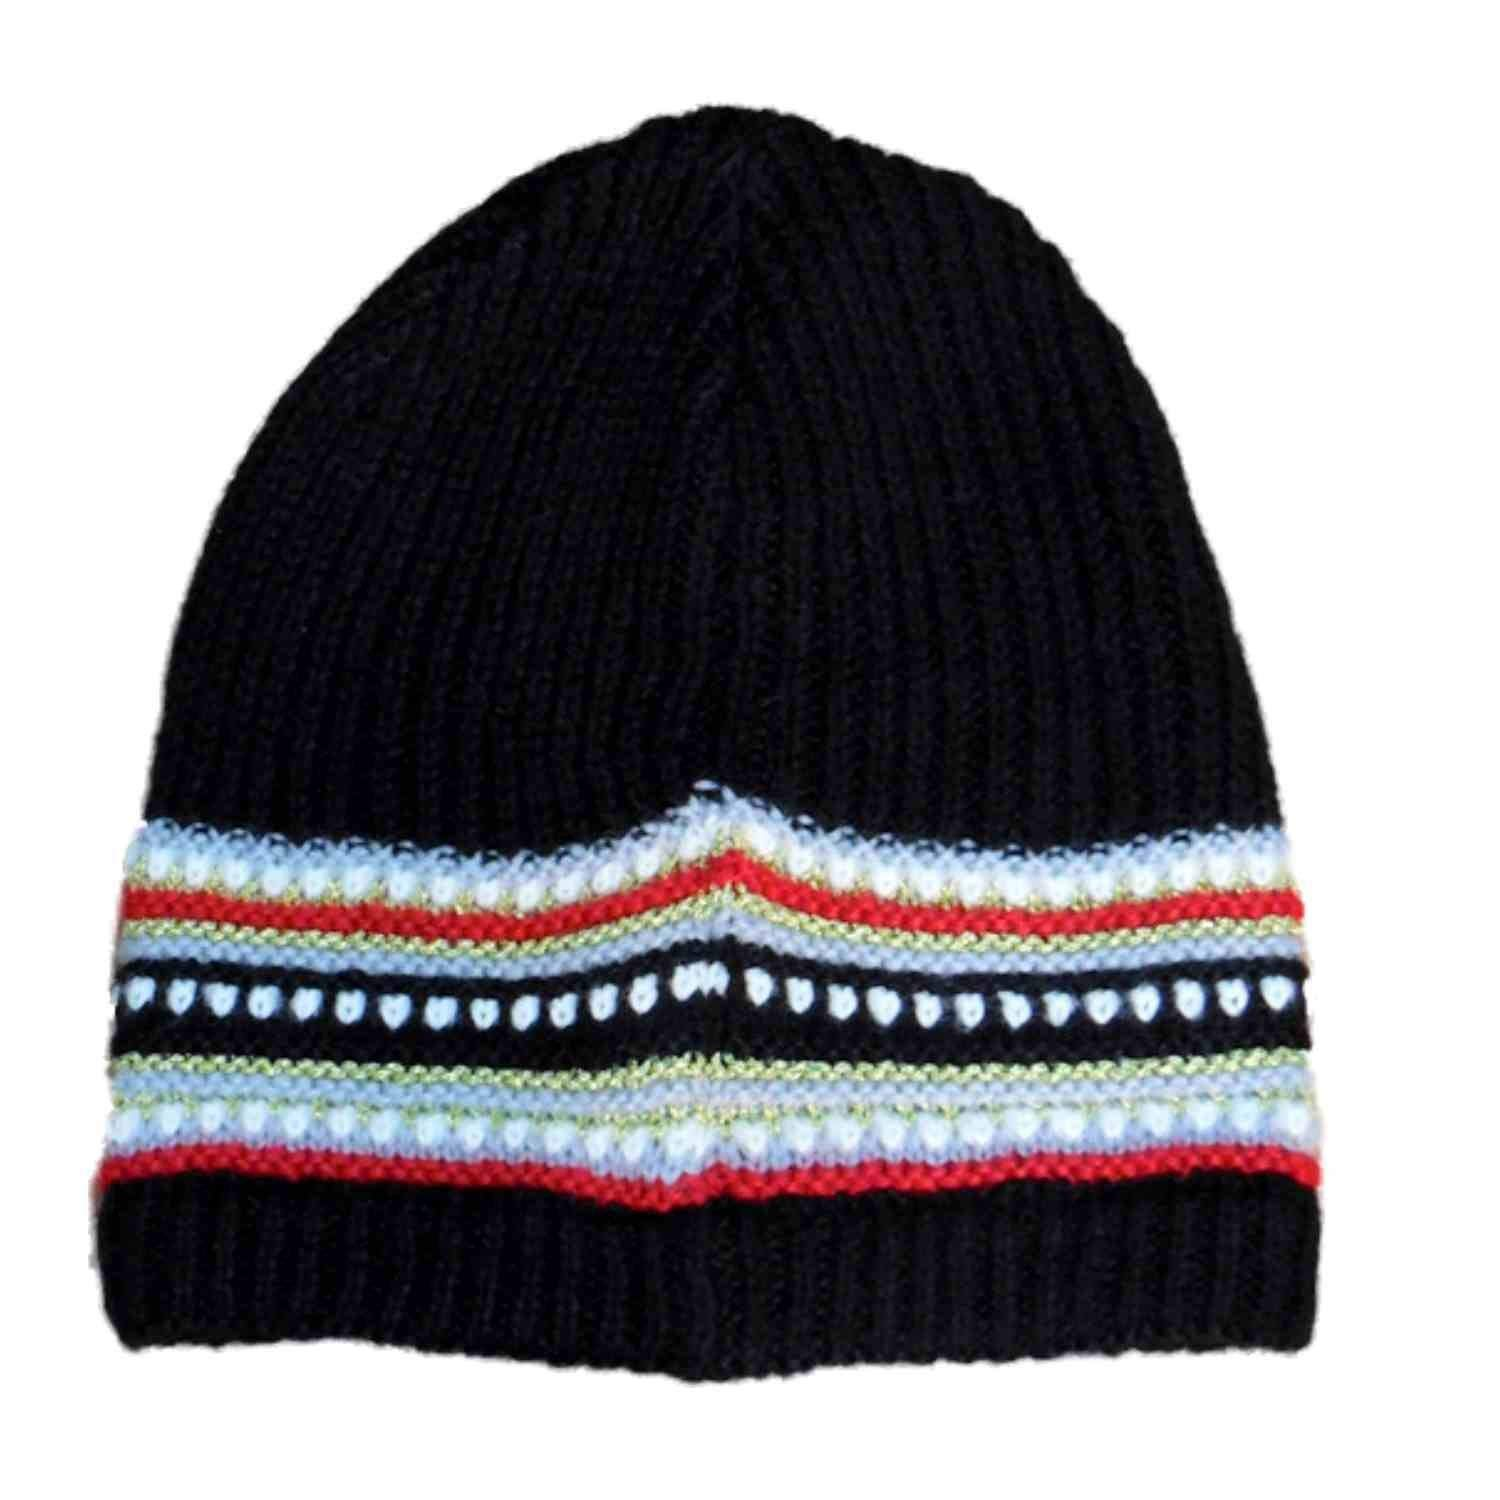 6d8a8ad526f1b Get Quotations · Fownes Womens Black   Red Stripe Knit Beanie Winter  Stocking Cap Hat